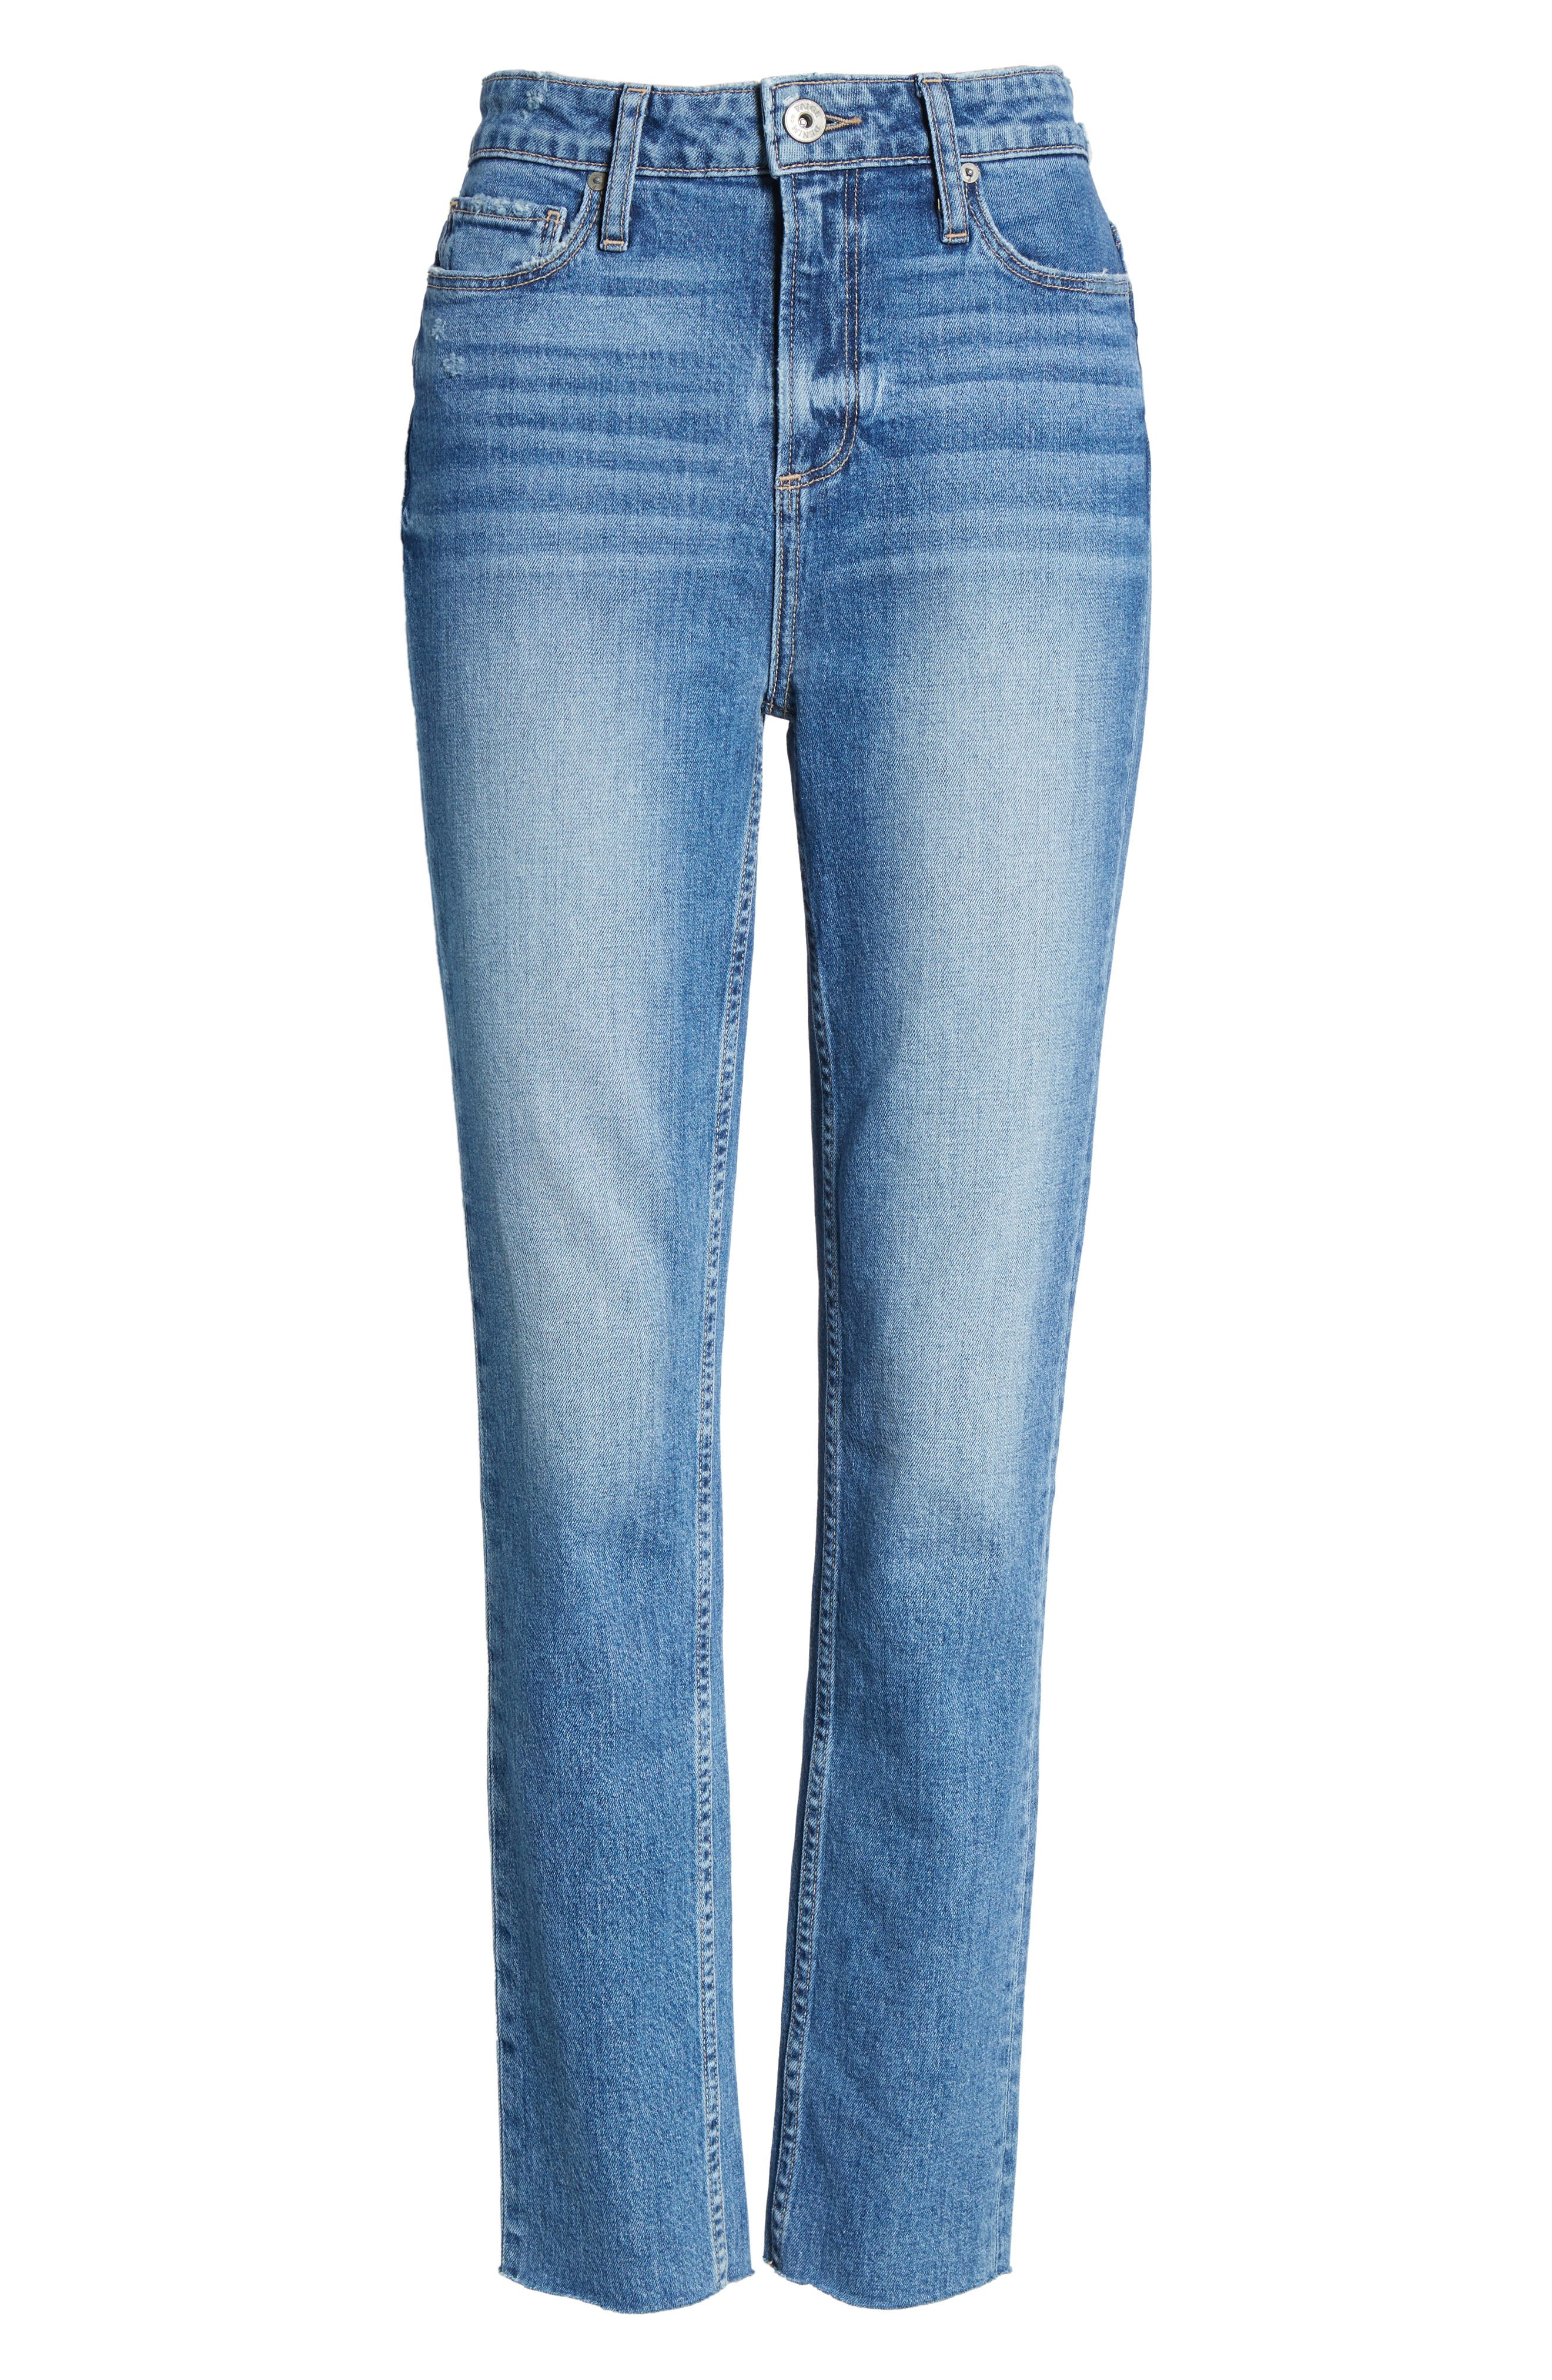 PAIGE, Vintage Hoxton High Waist Slim Raw Hem Jeans, Alternate thumbnail 6, color, BIRDIE